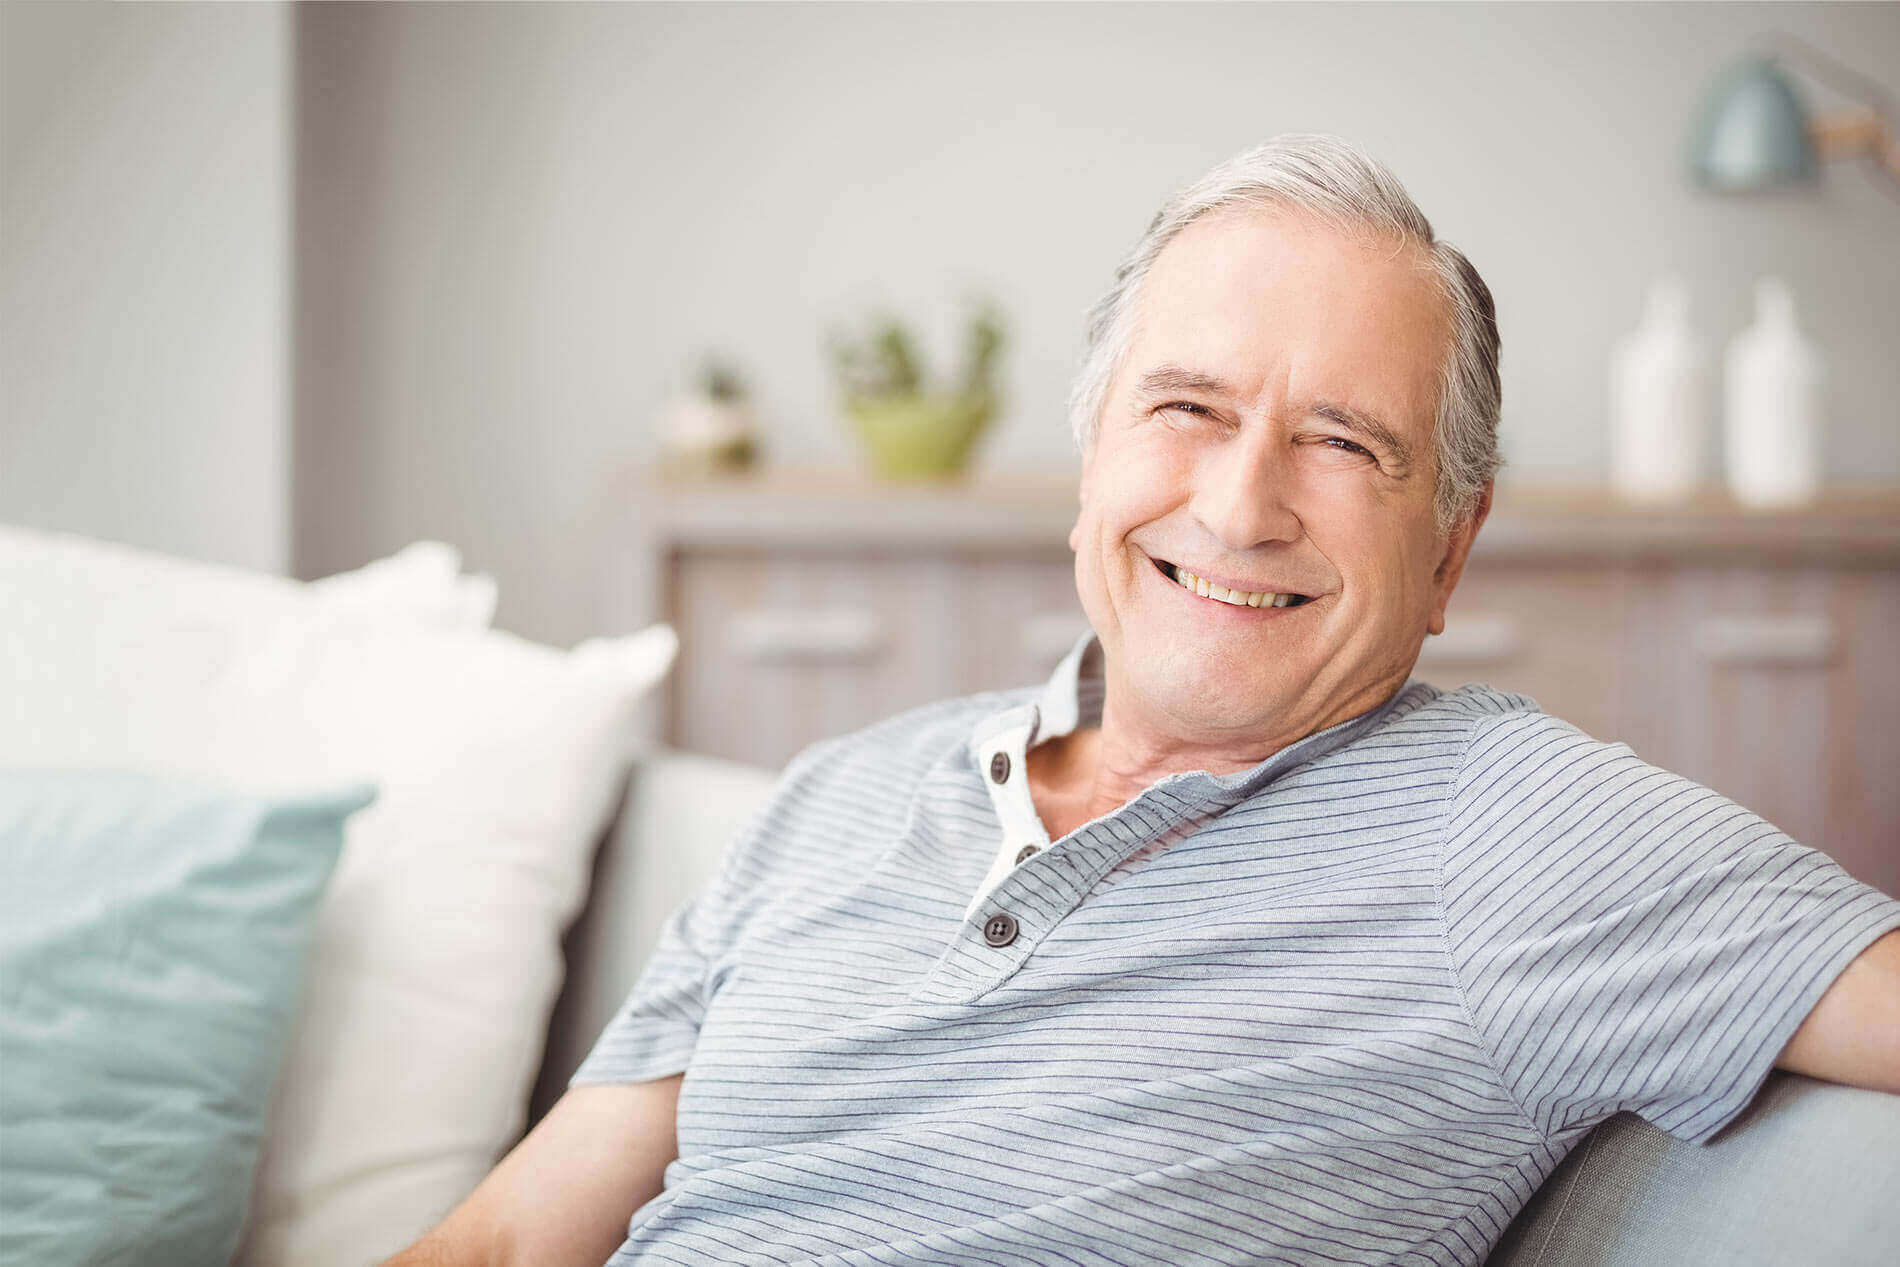 Man on Couch Smiling